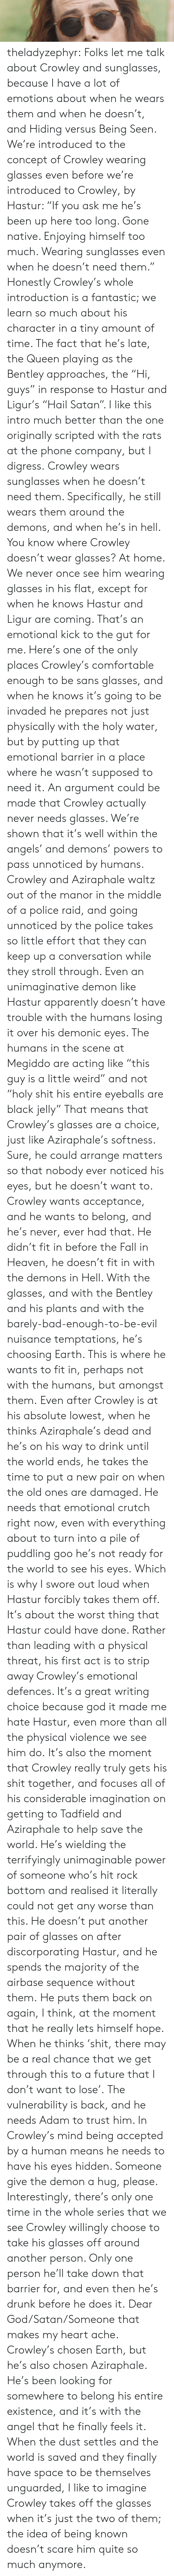 """Apparently, Bad, and Comfortable: theladyzephyr:  Folks let me talk about Crowley and sunglasses, because I have a lot of emotions about when he wears them and when he doesn't, and Hiding versus Being Seen. We're introduced to the concept of Crowley wearing glasses even before we're introduced to Crowley, by Hastur: """"If you ask me he's been up here too long. Gone native. Enjoying himself too much. Wearing sunglasses even when he doesn't need them."""" Honestly Crowley's whole introduction is a fantastic; we learn so much about his character in a tiny amount of time. The fact that he's late, the Queen playing as the Bentley approaches, the """"Hi, guys"""" in response to Hastur and Ligur's """"Hail Satan"""". I like this intro much better than the one originally scripted with the rats at the phone company, but I digress. Crowley wears sunglasses when he doesn't need them. Specifically, he still wears them around the demons, and when he's in hell. You know where Crowley doesn't wear glasses? At home. We never once see him wearing glasses in his flat, except for when he knows Hastur and Ligur are coming. That's an emotional kick to the gut for me. Here's one of the only places Crowley's comfortable enough to be sans glasses, and when he knows it's going to be invaded he prepares not just physically with the holy water, but by putting up that emotional barrier in a place where he wasn't supposed to need it. An argument could be made that Crowley actually never needs glasses. We're shown that it's well within the angels' and demons' powers to pass unnoticed by humans. Crowley and Aziraphale waltz out of the manor in the middle of a police raid, and going unnoticed by the police takes so little effort that they can keep up a conversation while they stroll through. Even an unimaginative demon like Hastur apparently doesn't have trouble with the humans losing it over his demonic eyes. The humans in the scene at Megiddo are acting like """"this guy is a little weird"""" and not """"holy shit his en"""